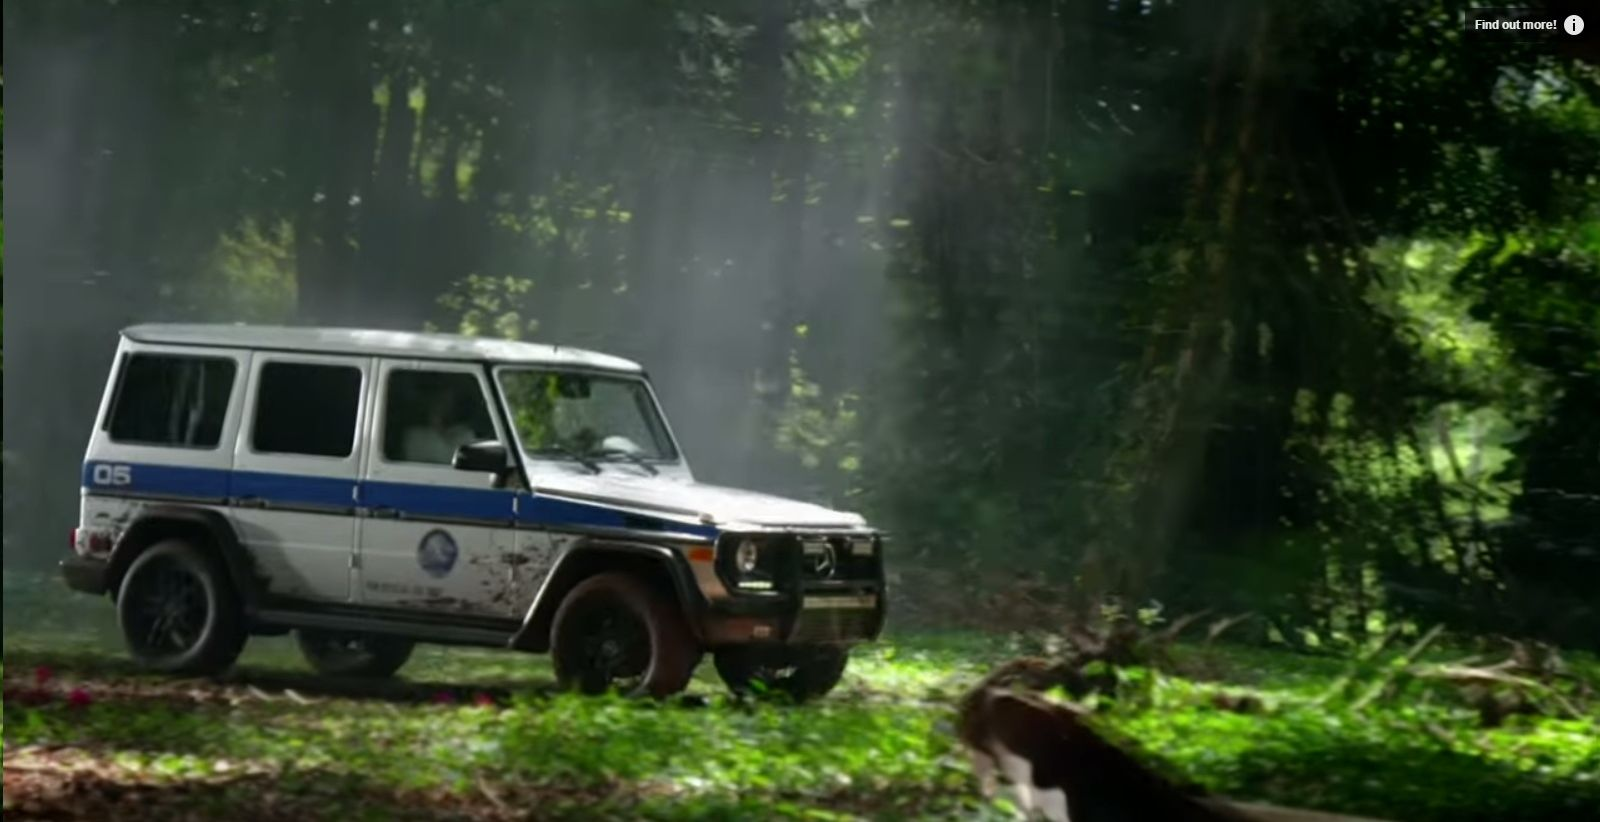 Jurassic World Mercedes G550